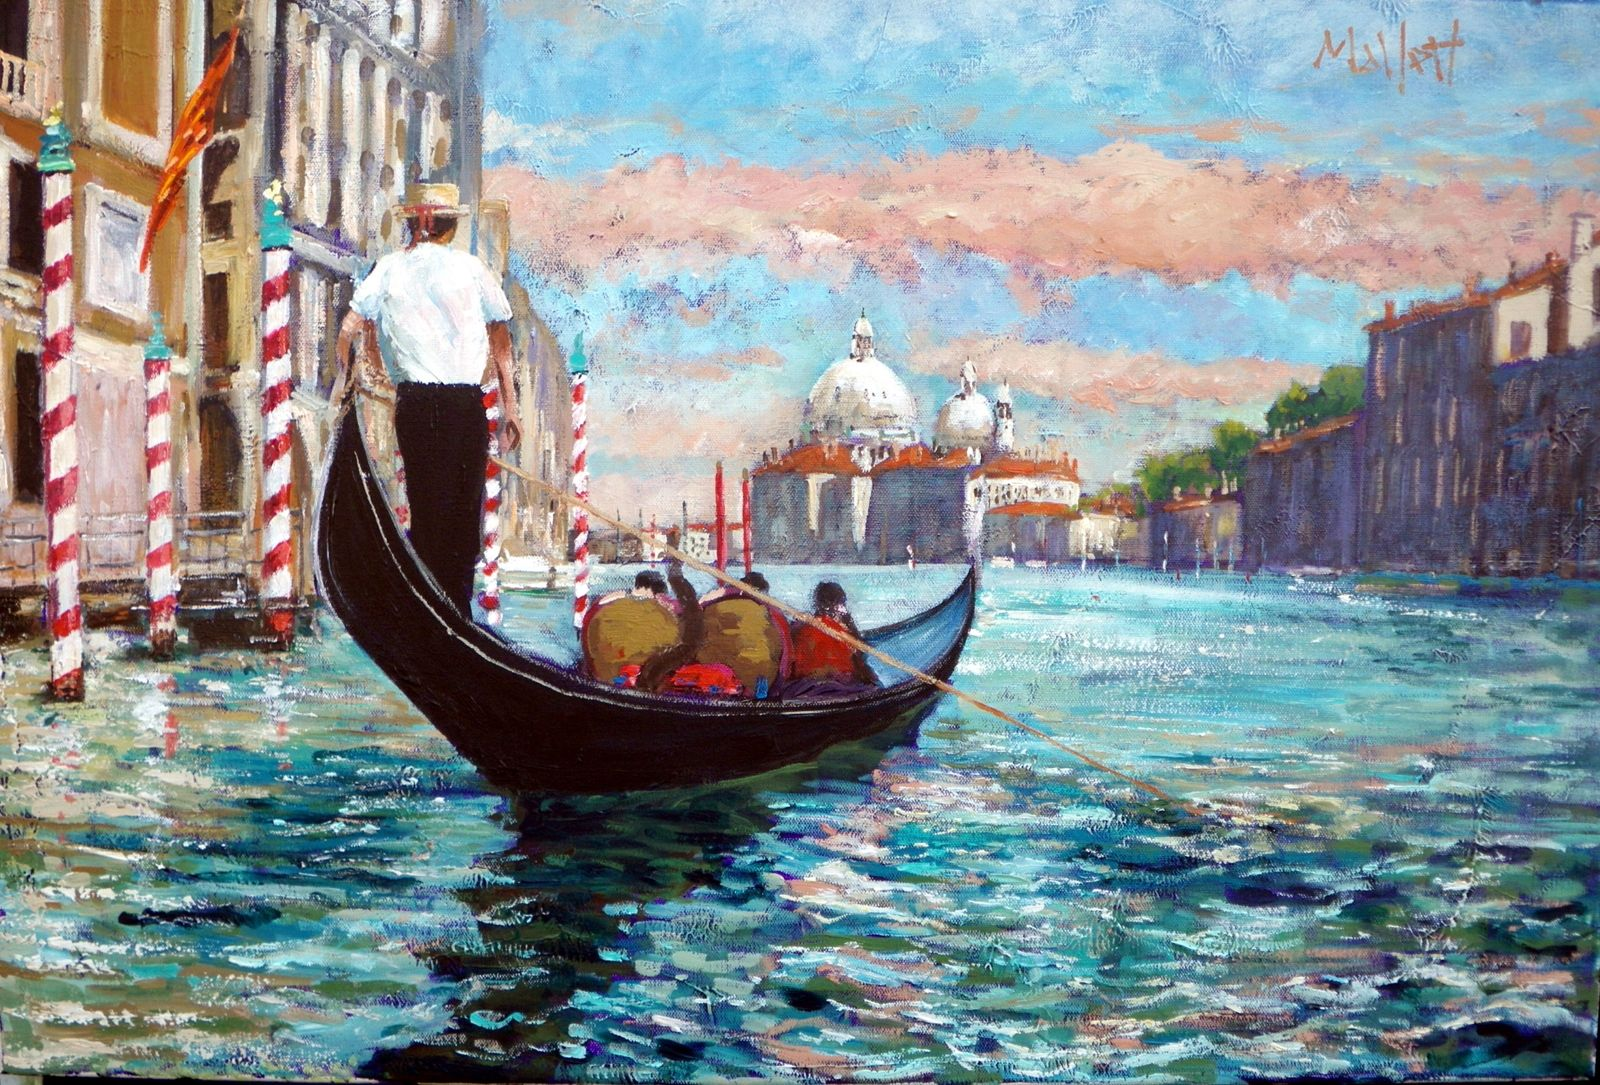 audioBoom / Timmy's painting of Venice the Grand Canal | Venice painting, Grand  canal, Painting